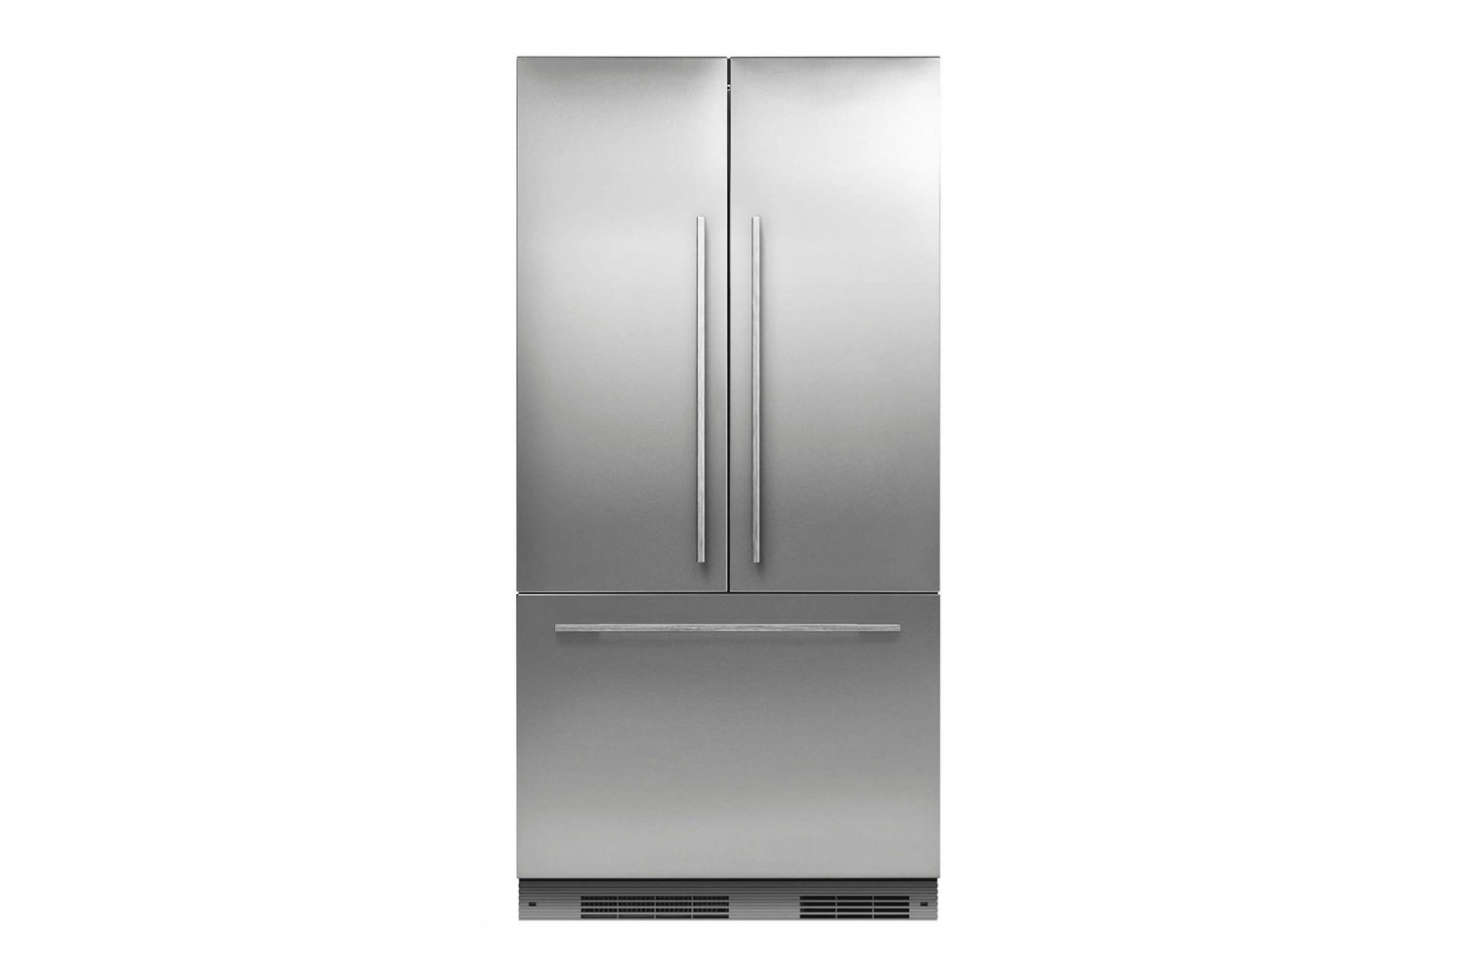 The refrigerator featured is the Fisher & Paykel ActiveSmart Fridge French Door Slide-in Panel Ready RS90Asrc=